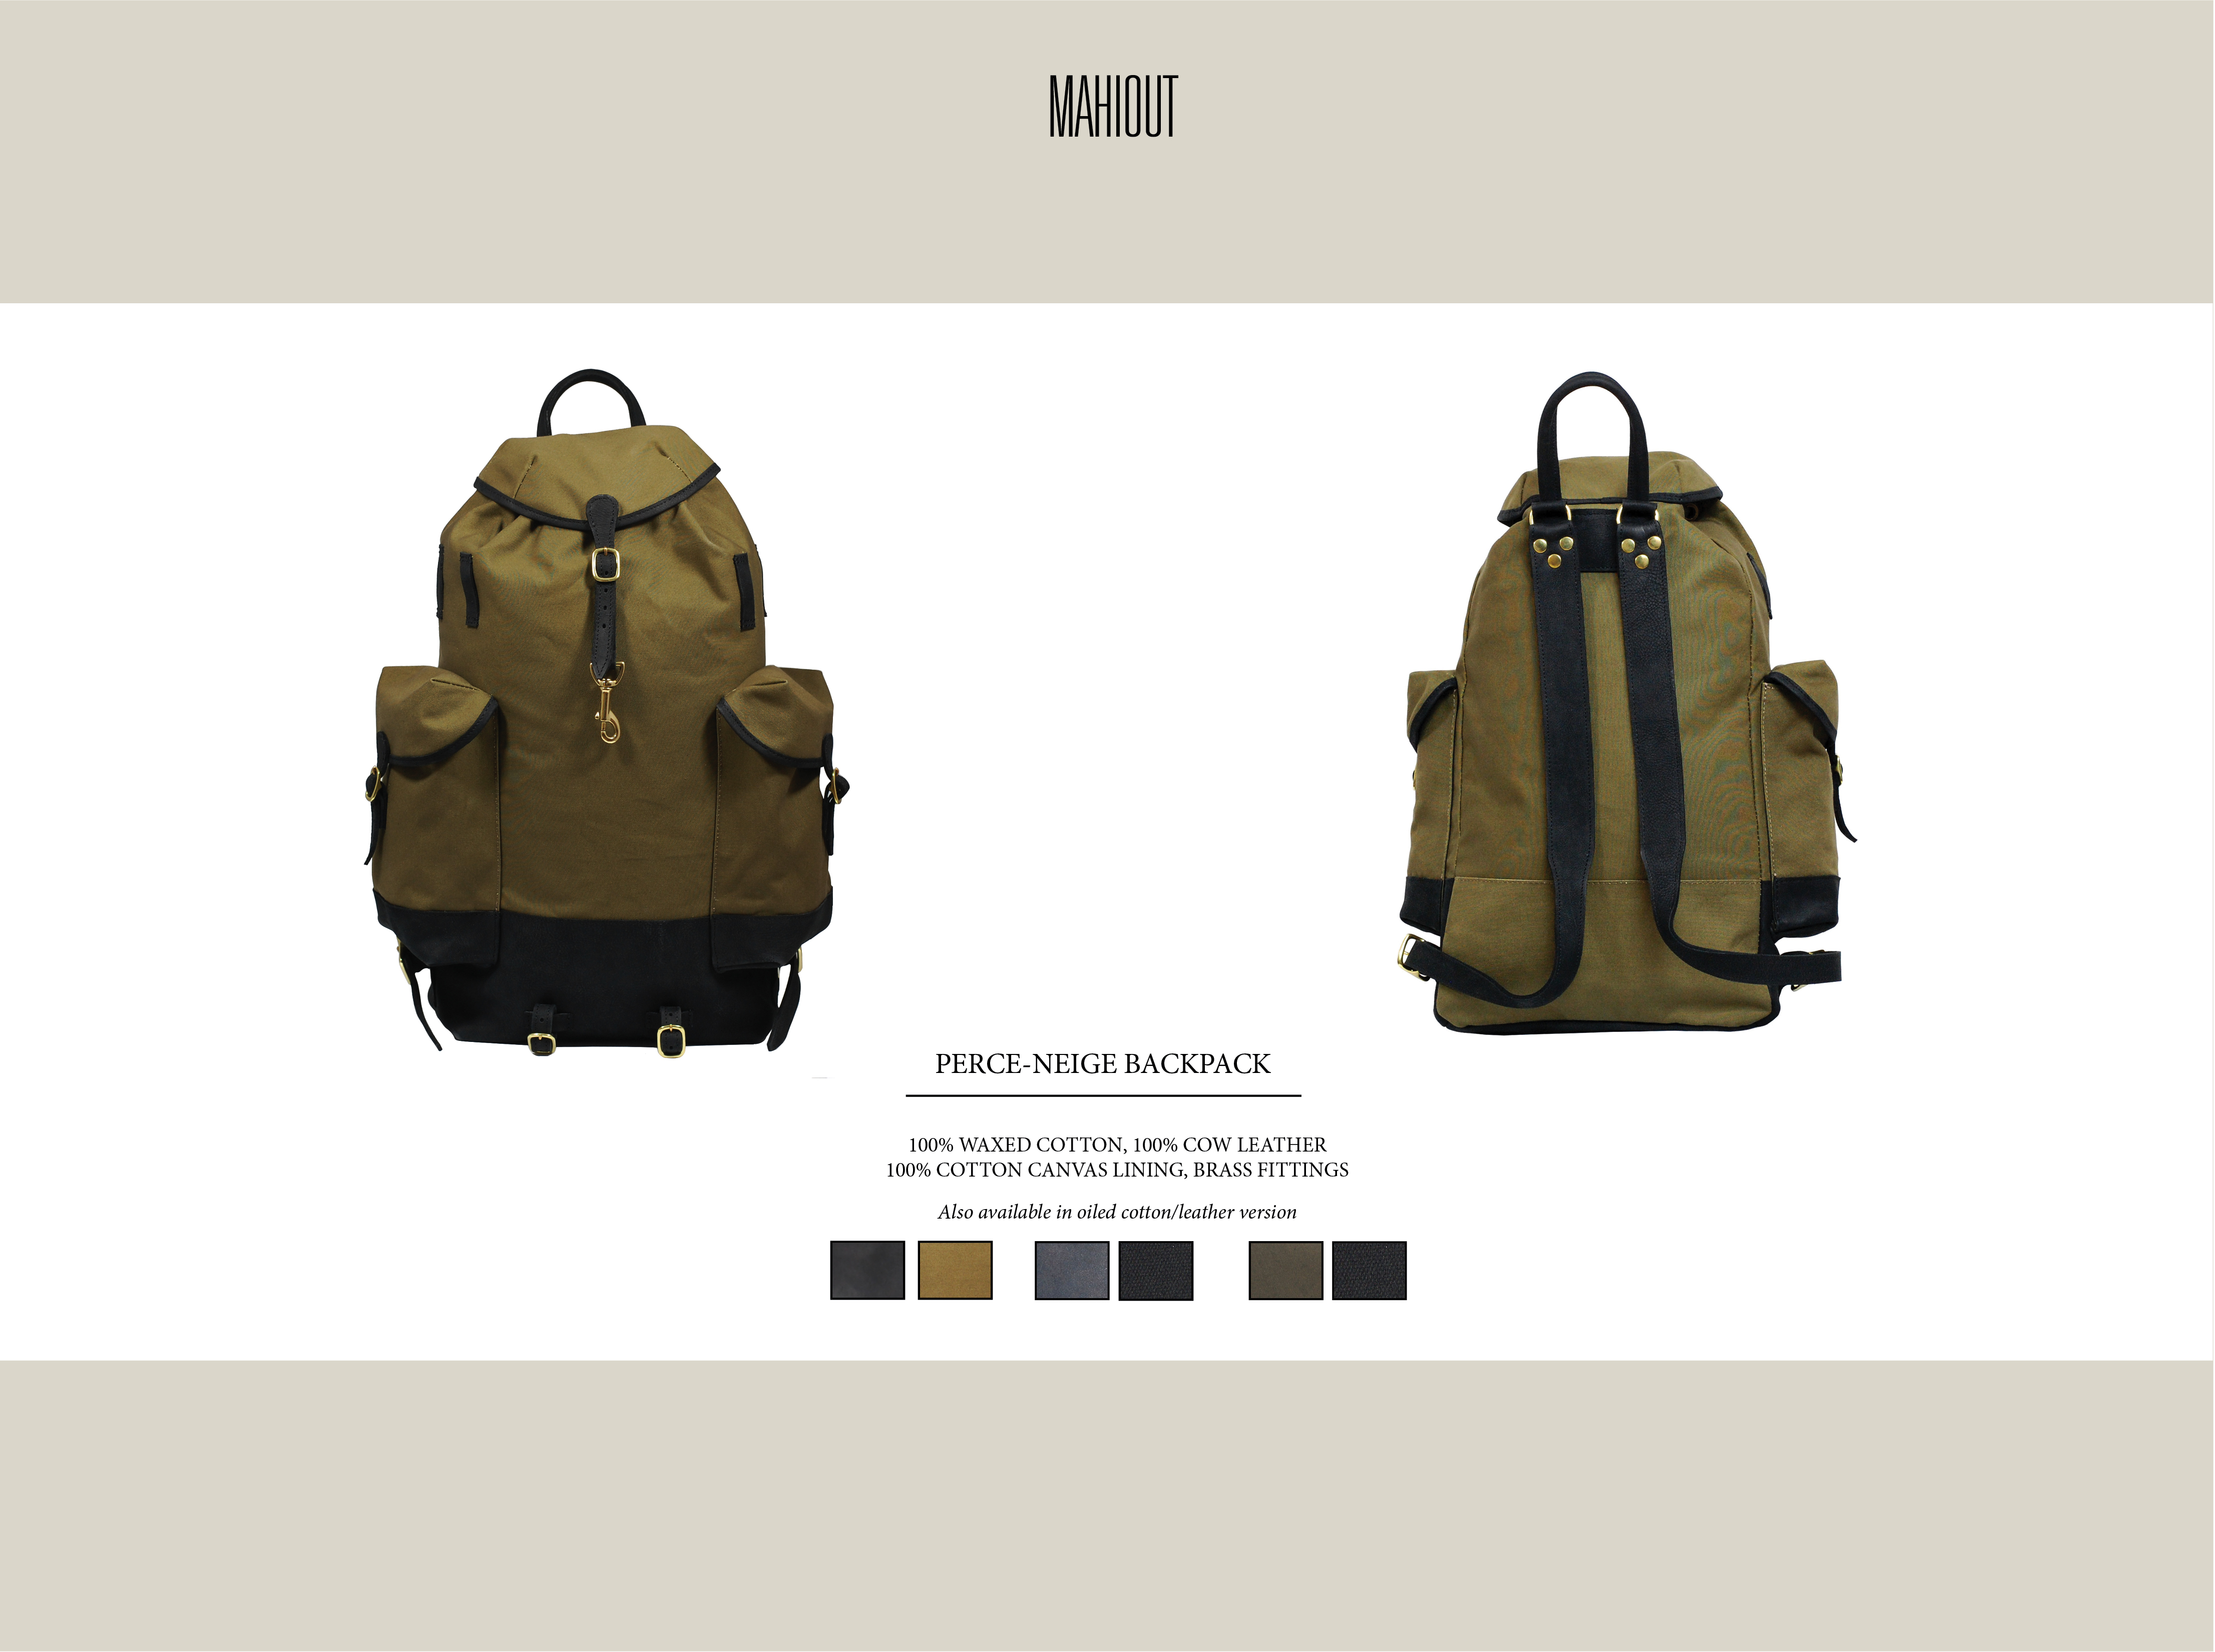 mahiout perce-neige backpack in canvas and leather